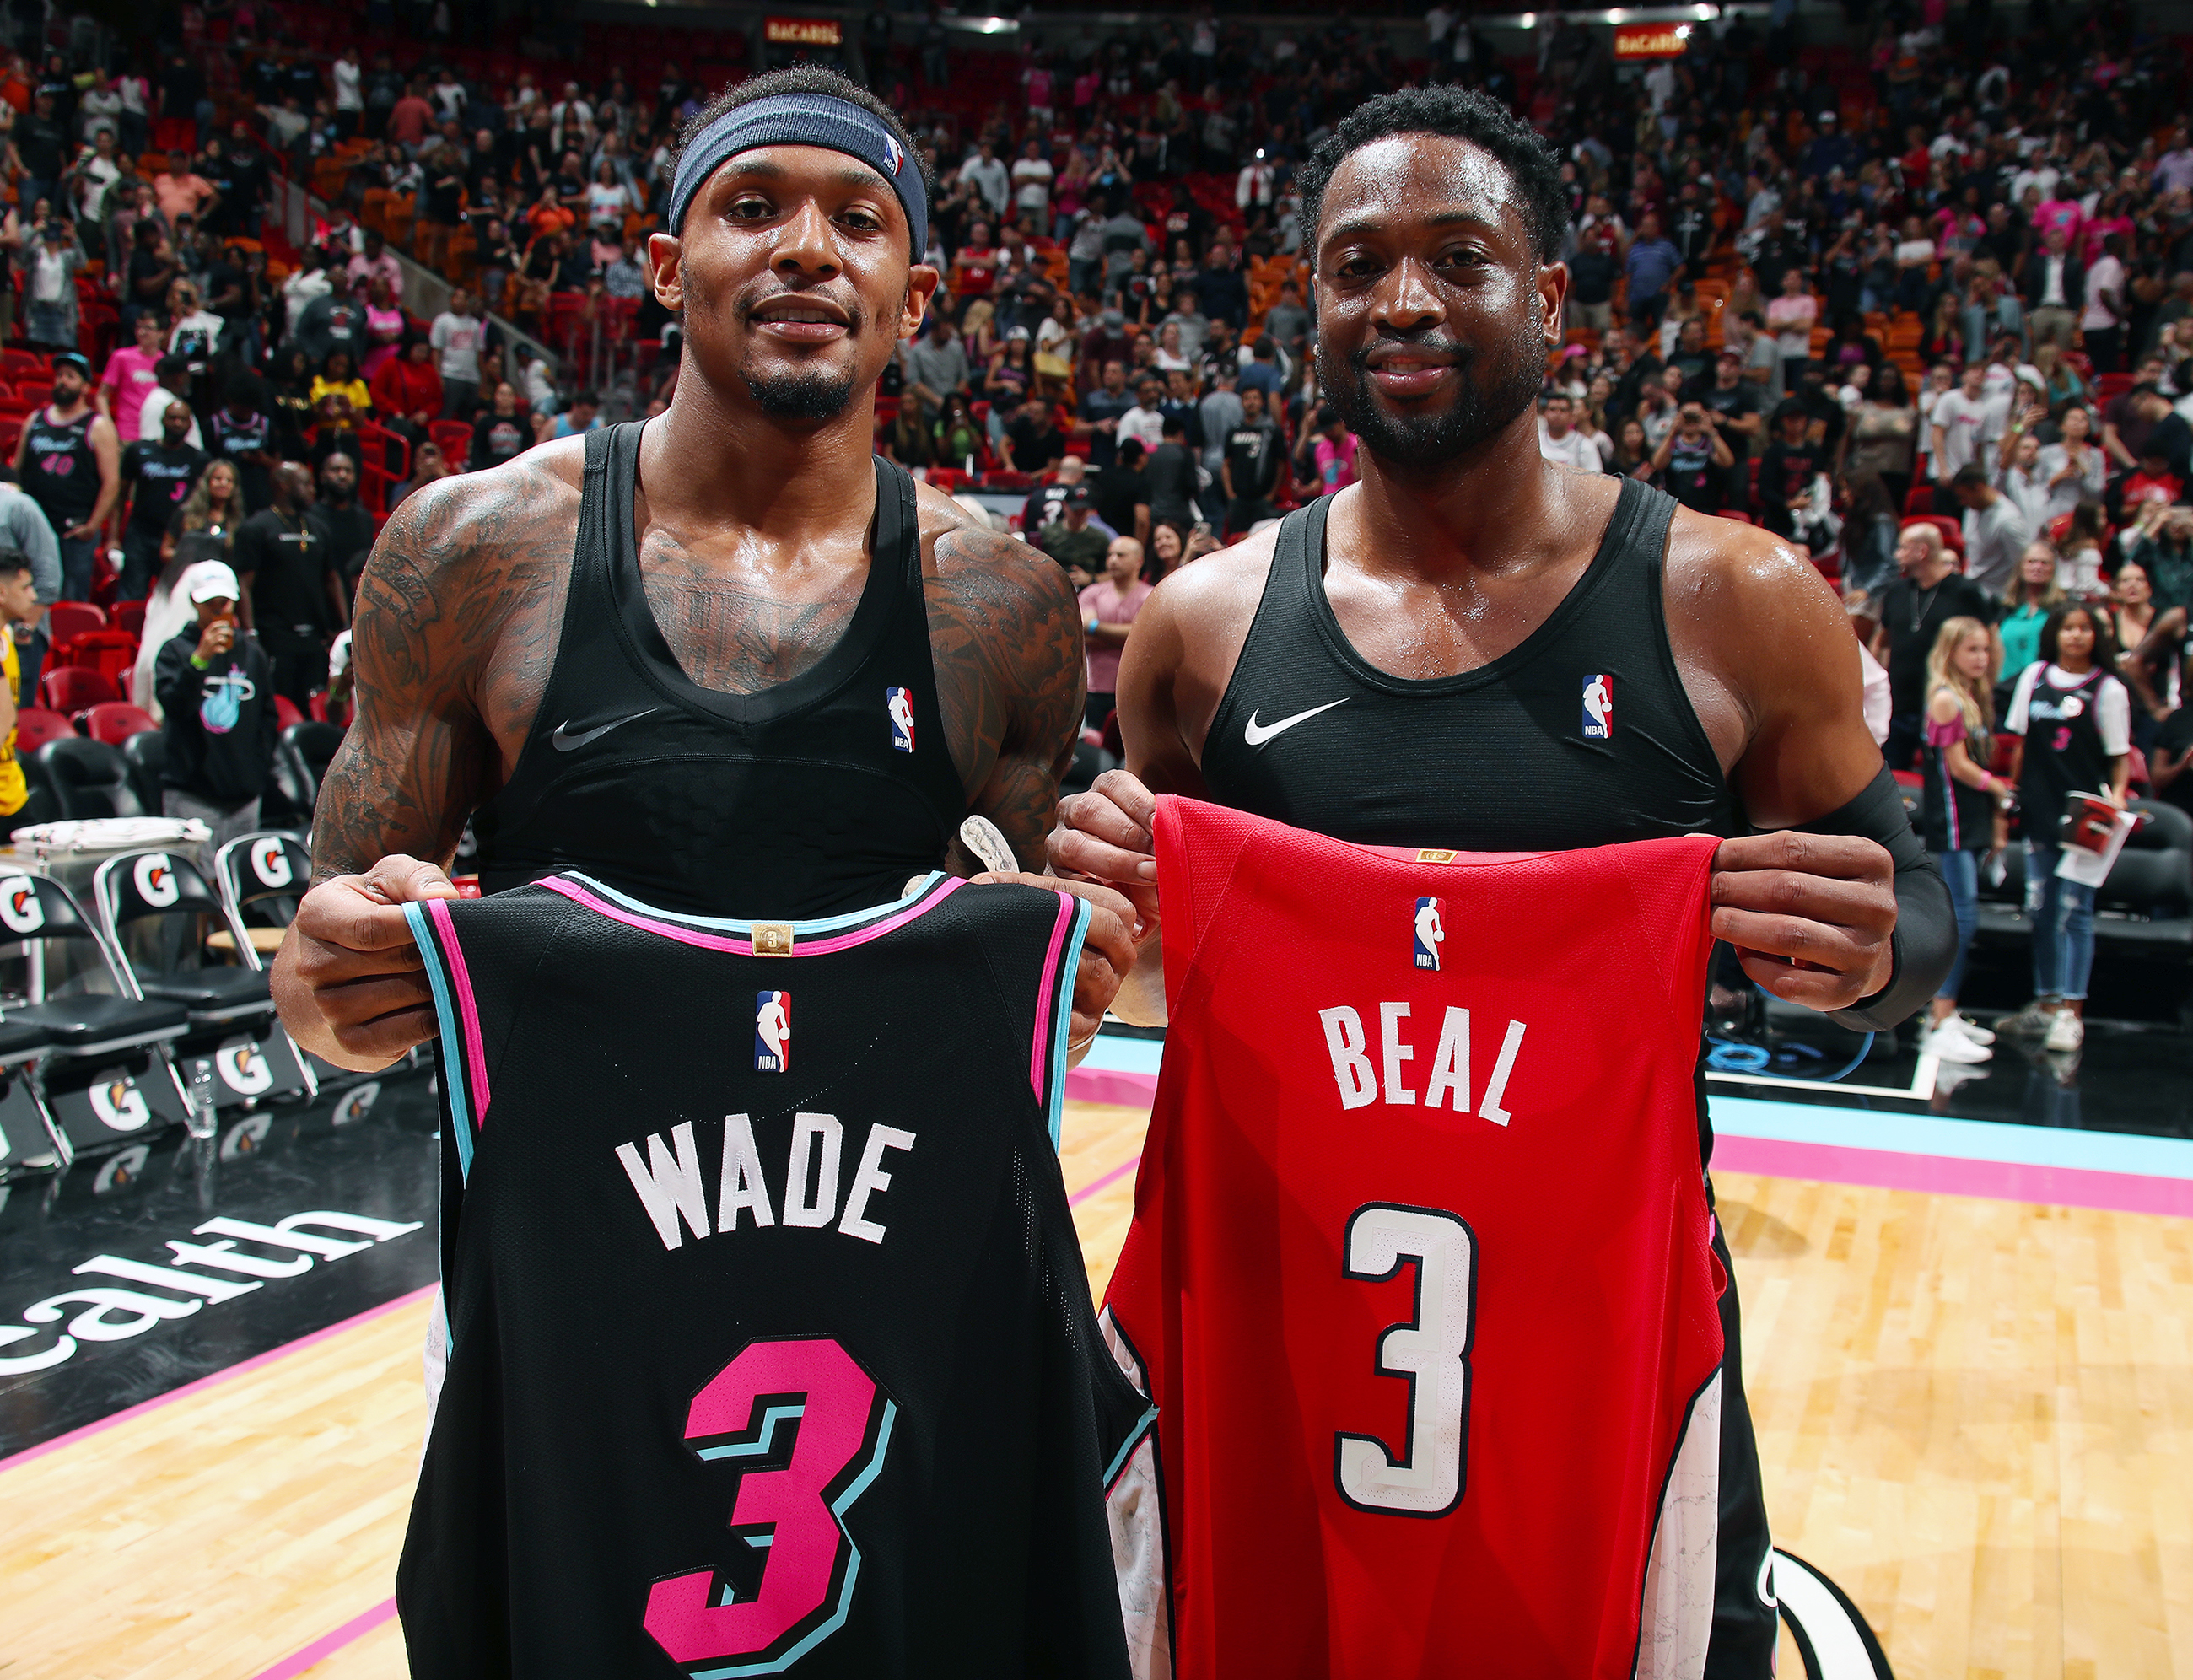 best sneakers bd3f2 28a2e Beal calls Wade his idol during jersey exchange | NBA.com